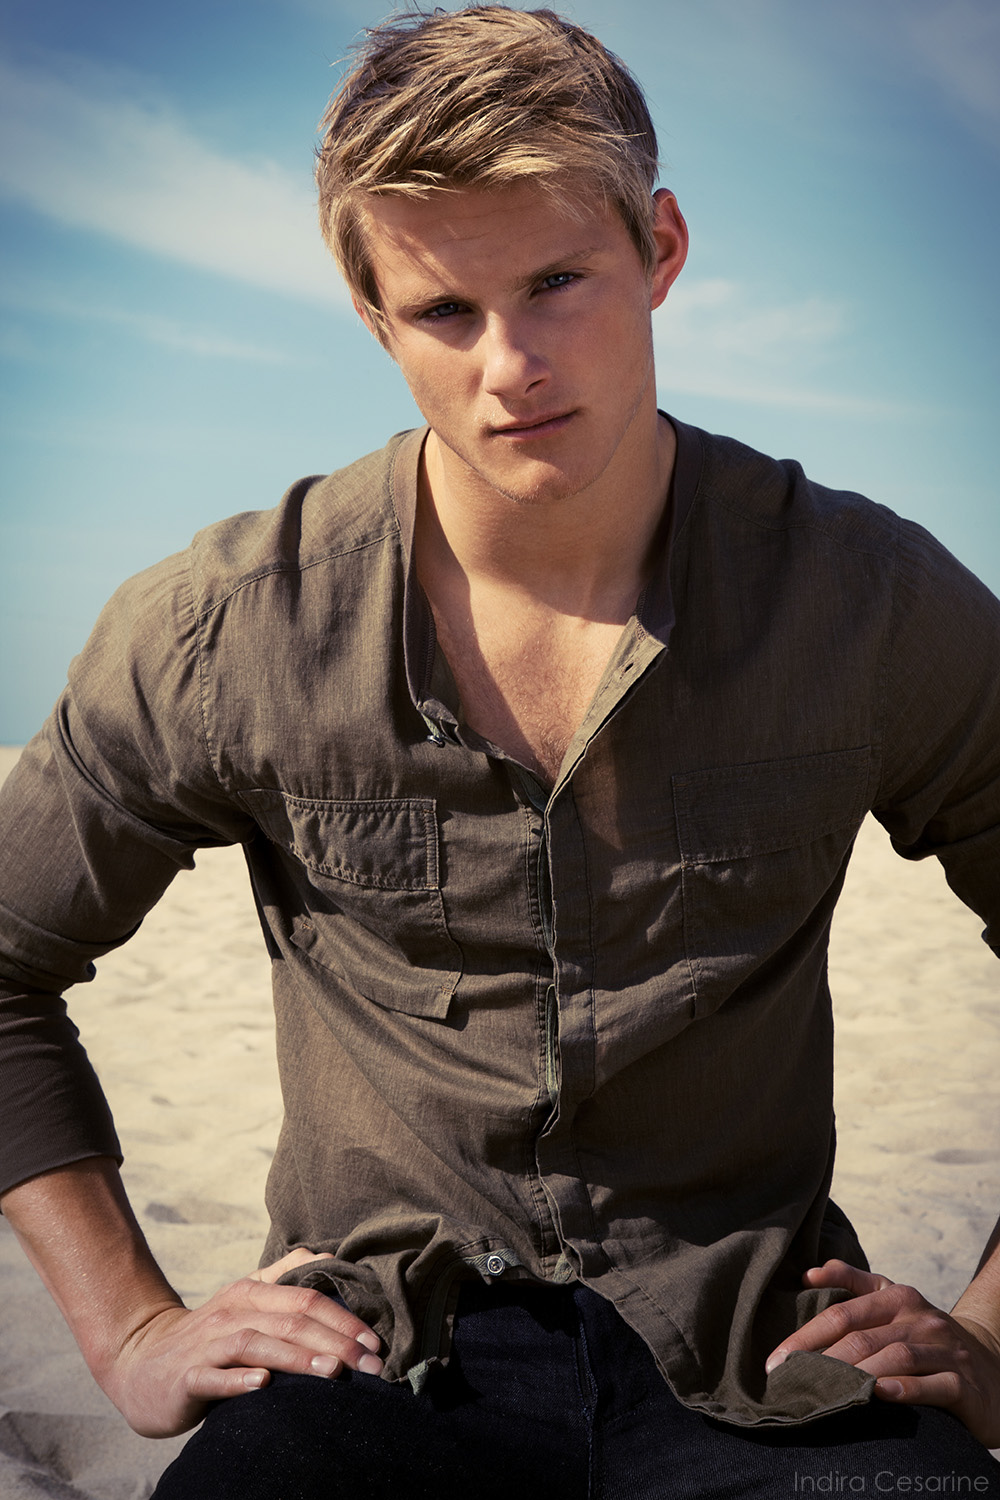 Alexander-Ludwig-Photography-by-Indira-Cesarine-006.jpg